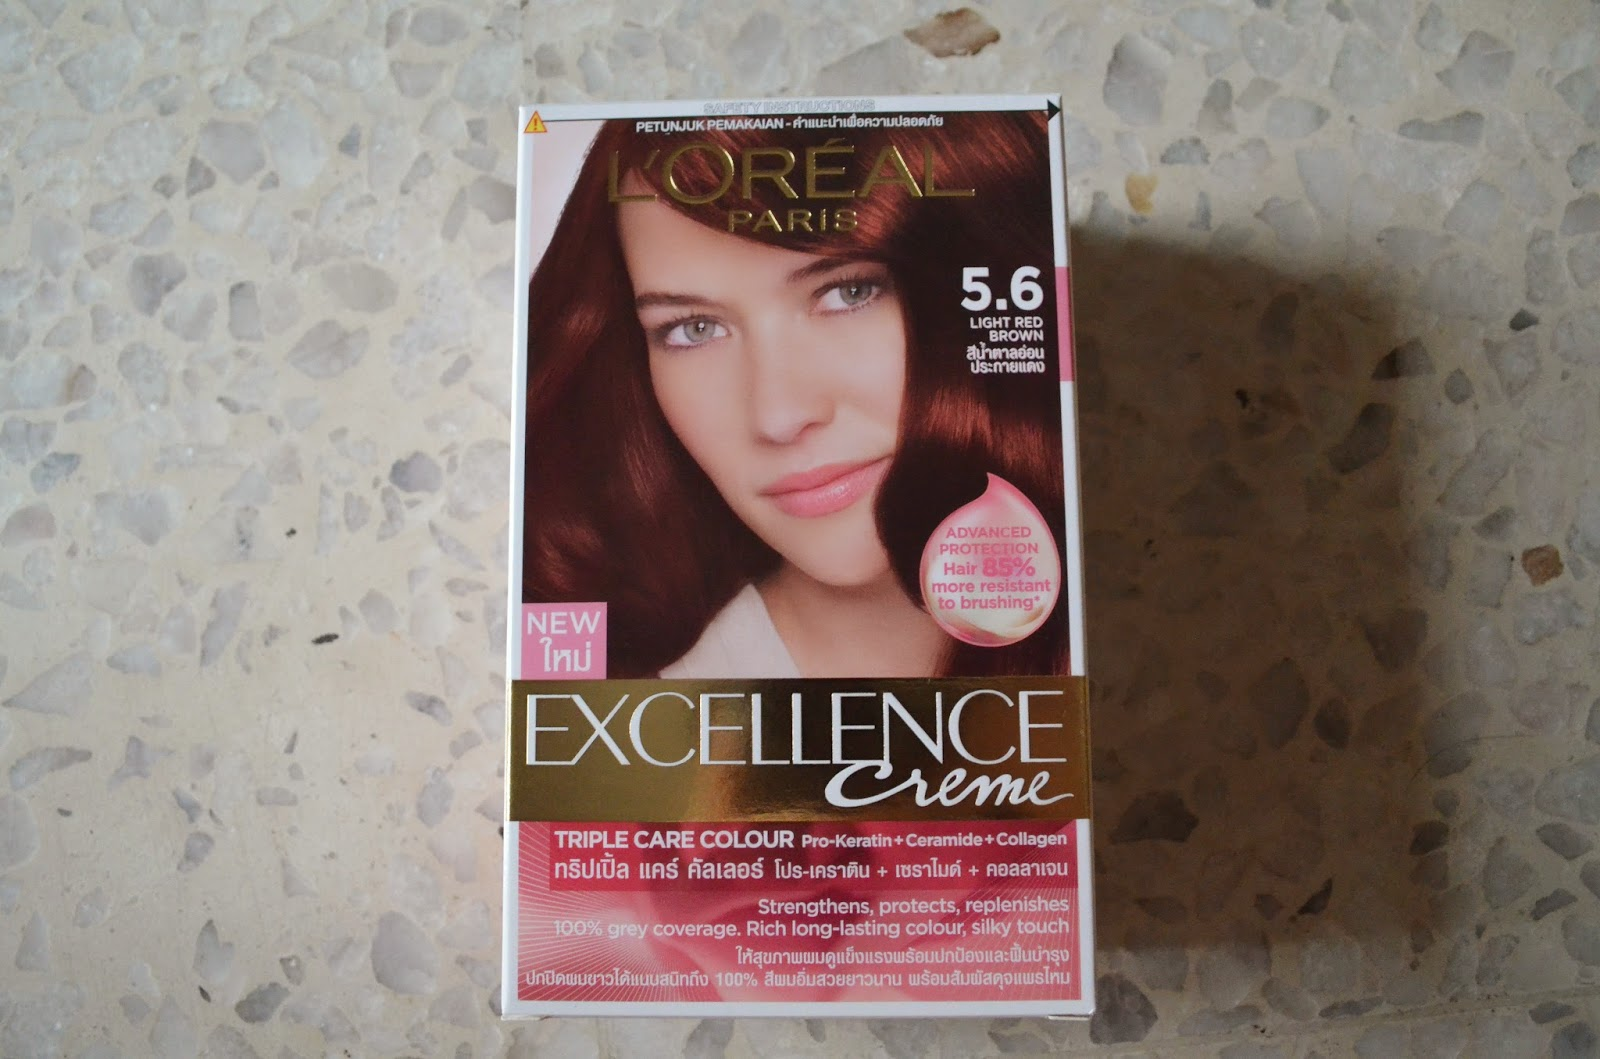 Rachel Lim Loreal Excellence Creme 56 Light Red Brown On Black